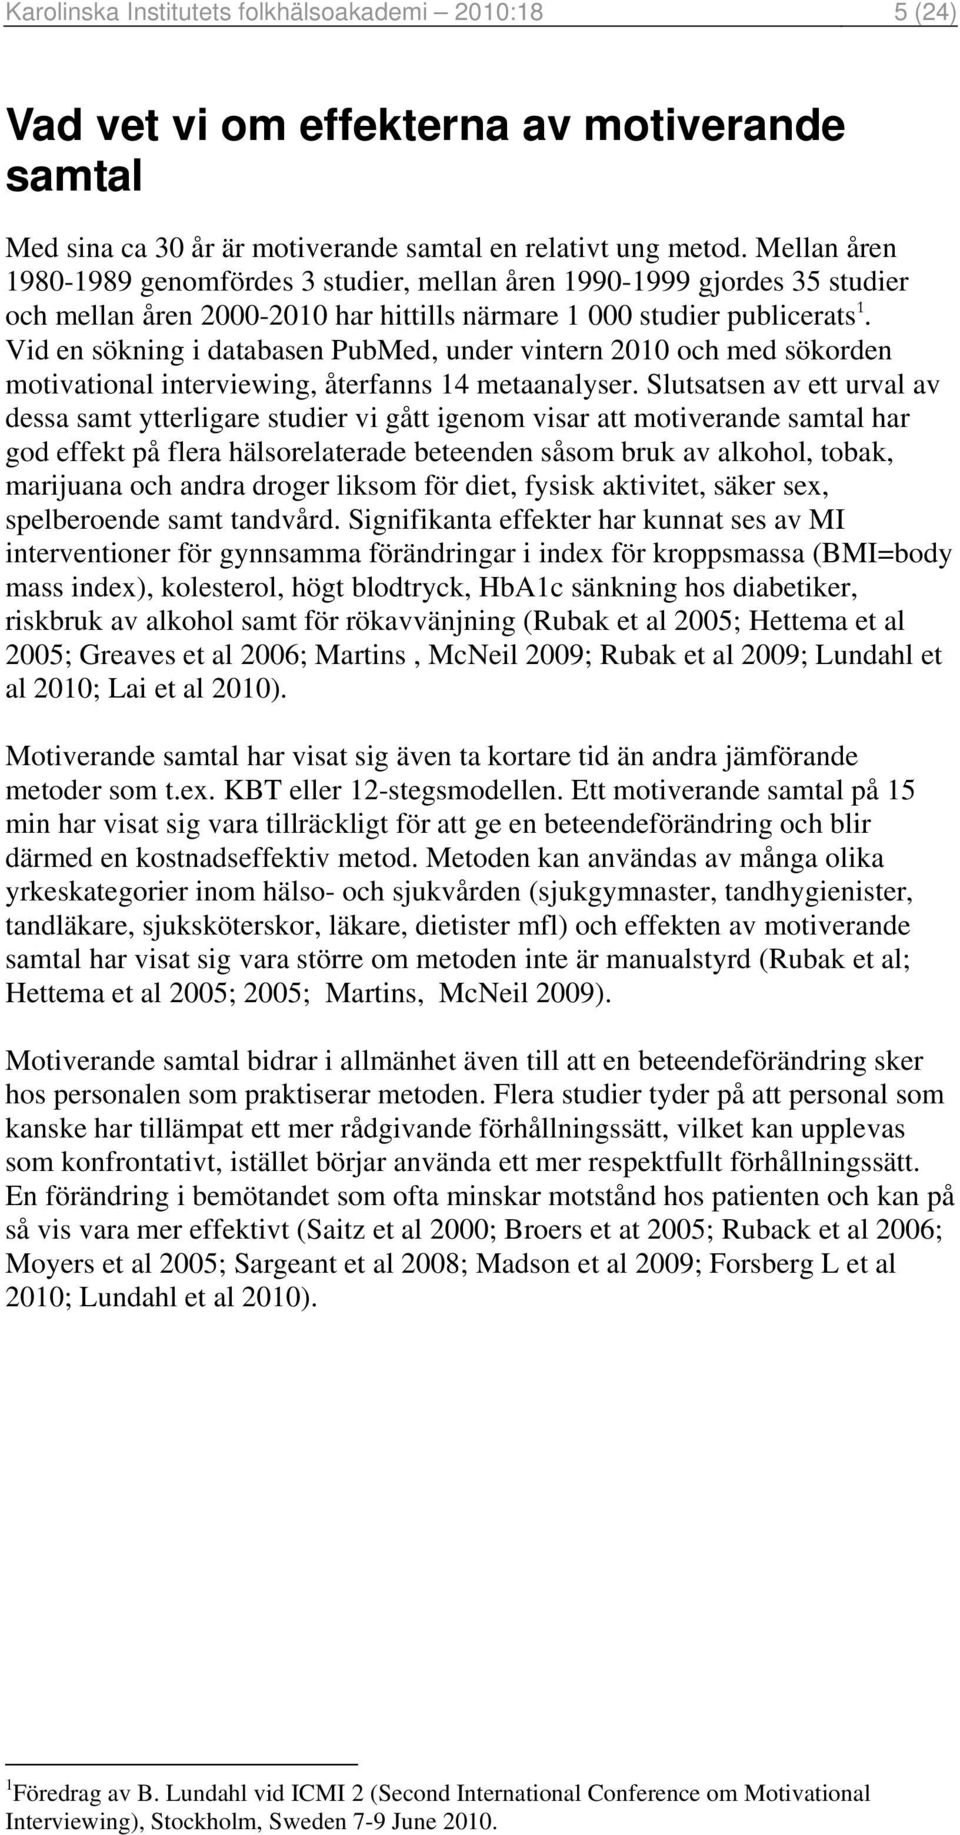 Vid en sökning i databasen PubMed, under vintern 2010 och med sökorden motivational interviewing, återfanns 14 metaanalyser.